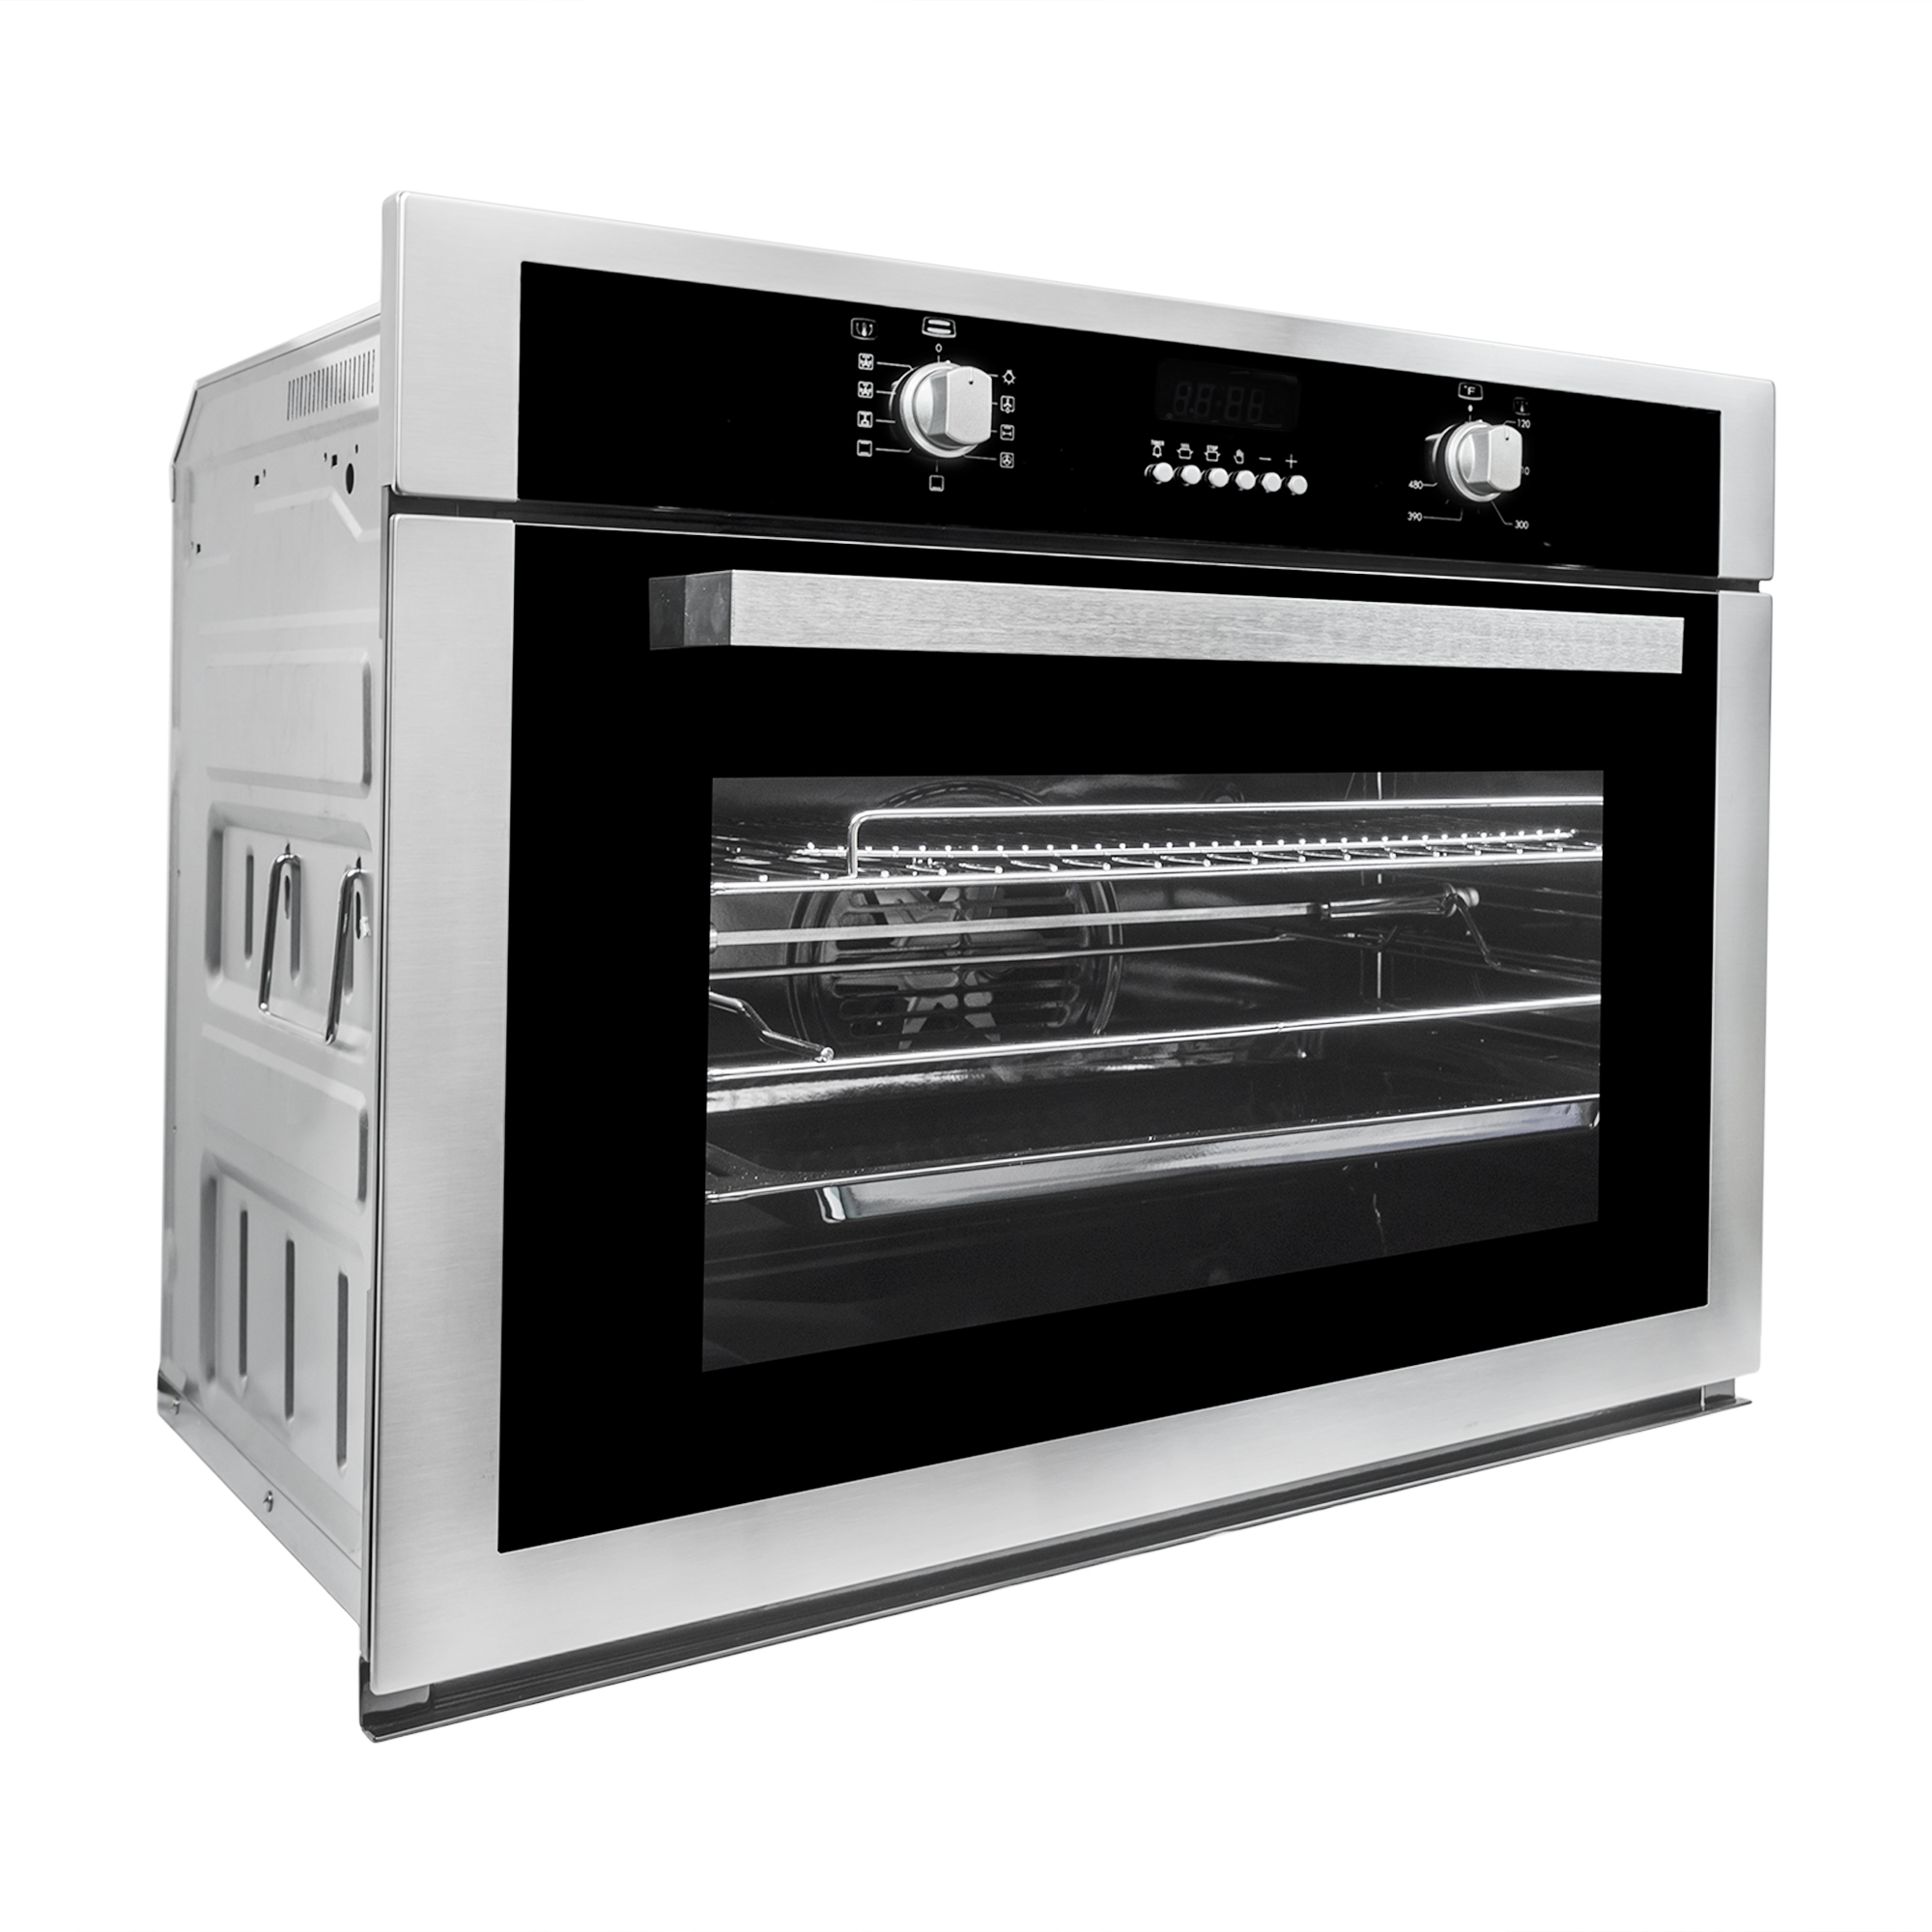 30 In 2 8 Cu Ft Single Electric Wall Oven With Rotating